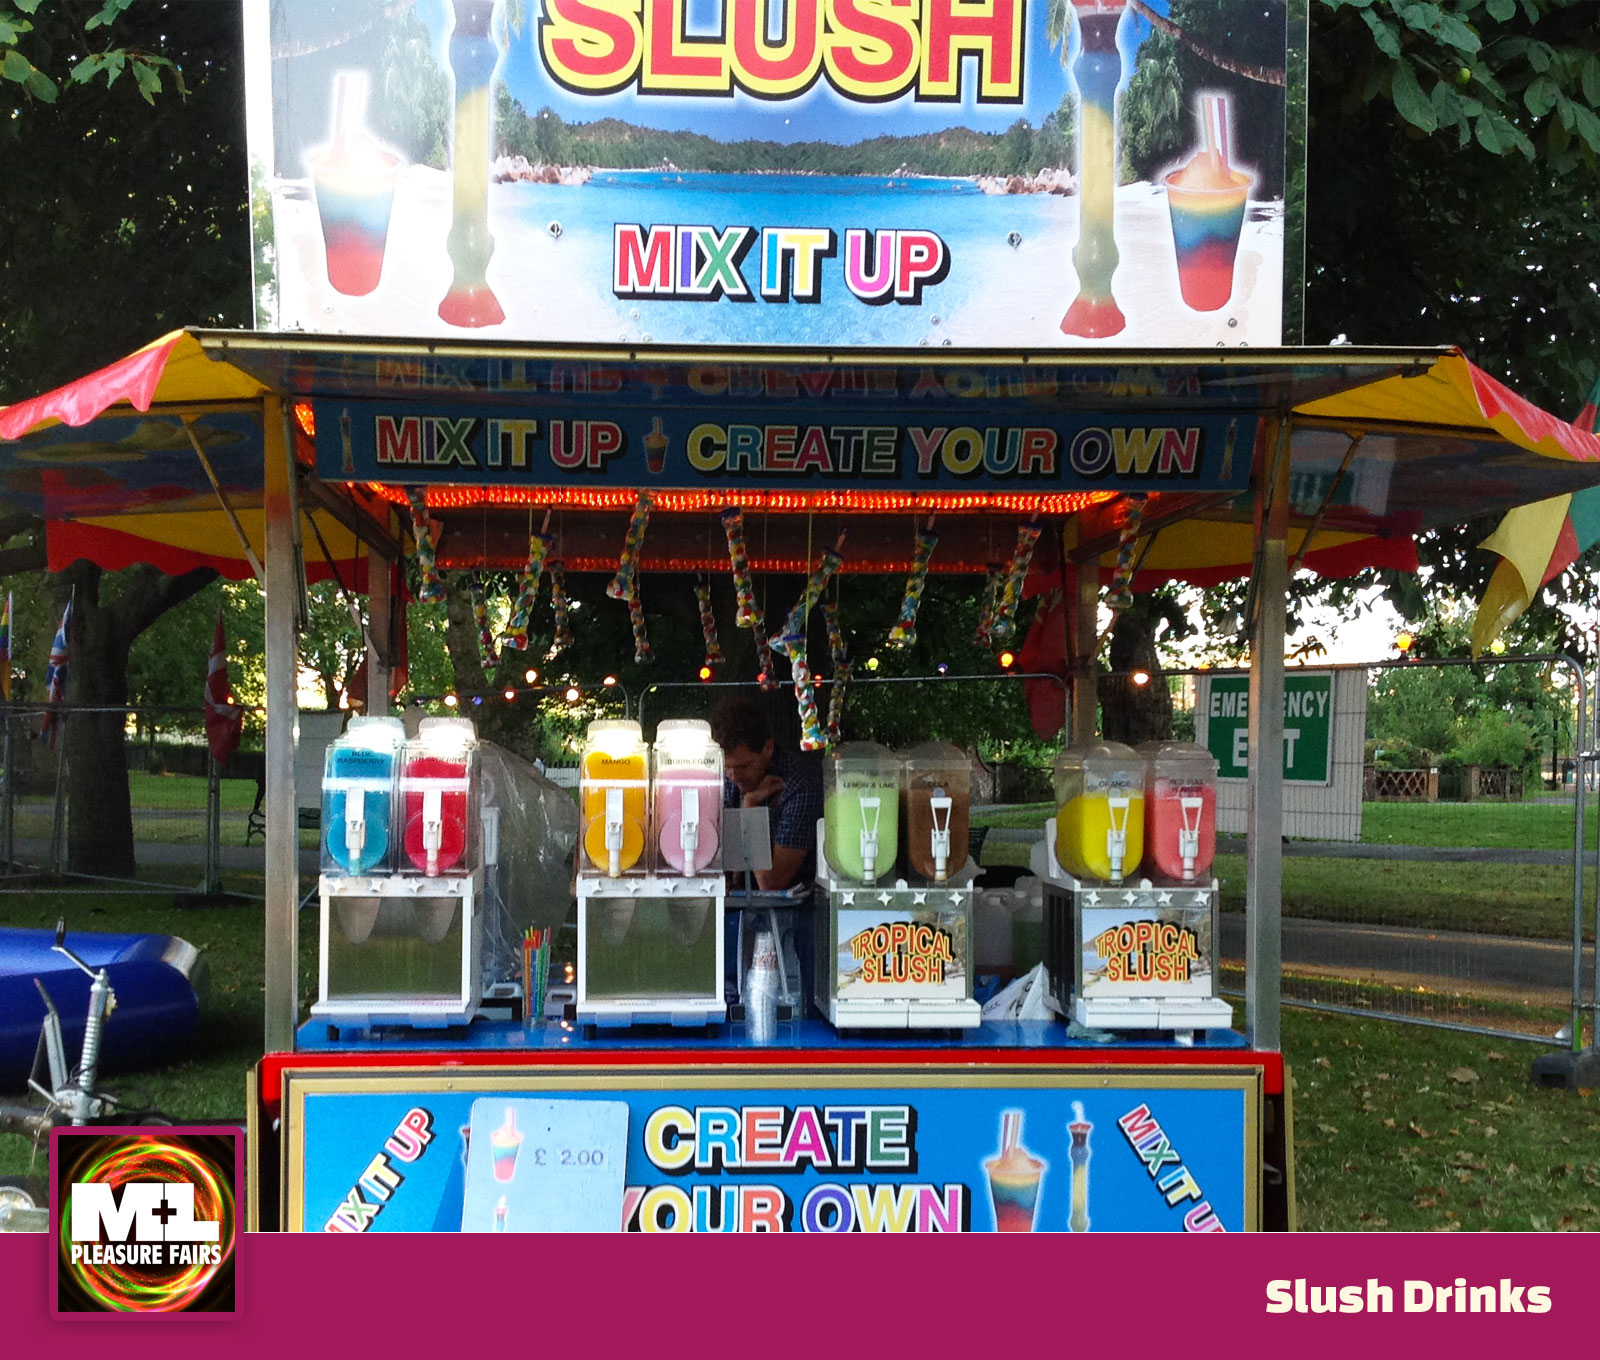 Slush Drinks